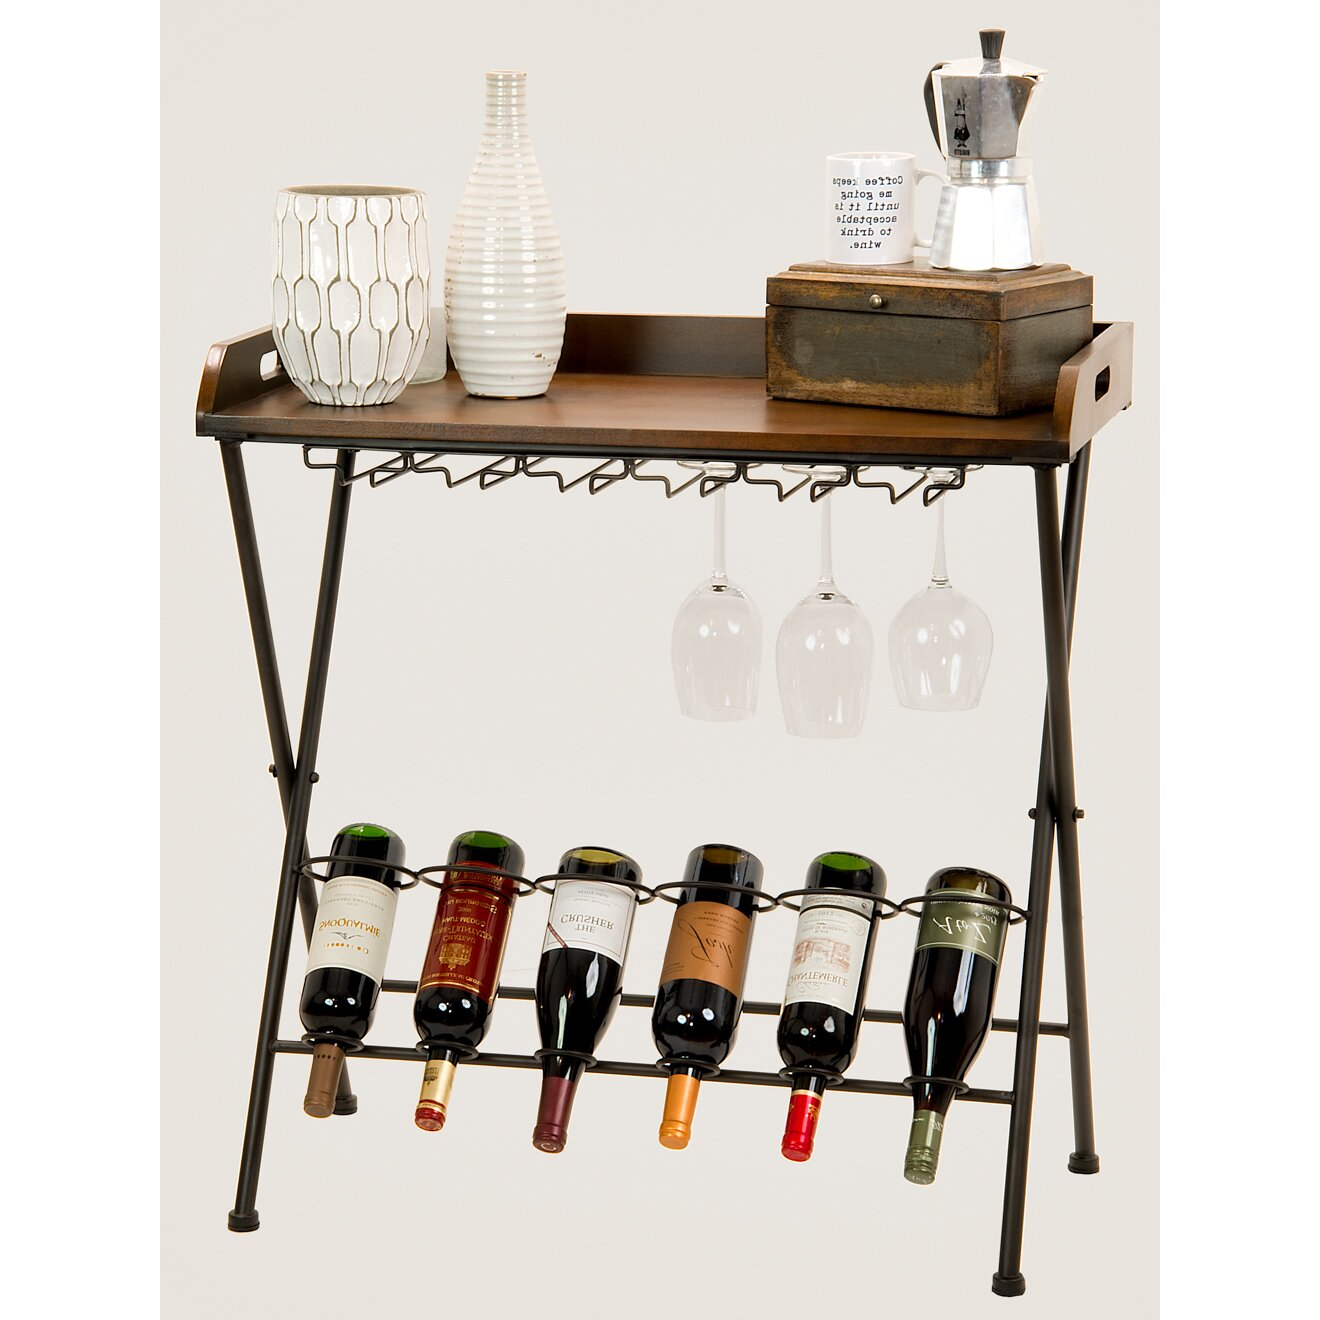 Homestyle collection 6 bottle floor wine rack wayfair for Floor wine rack